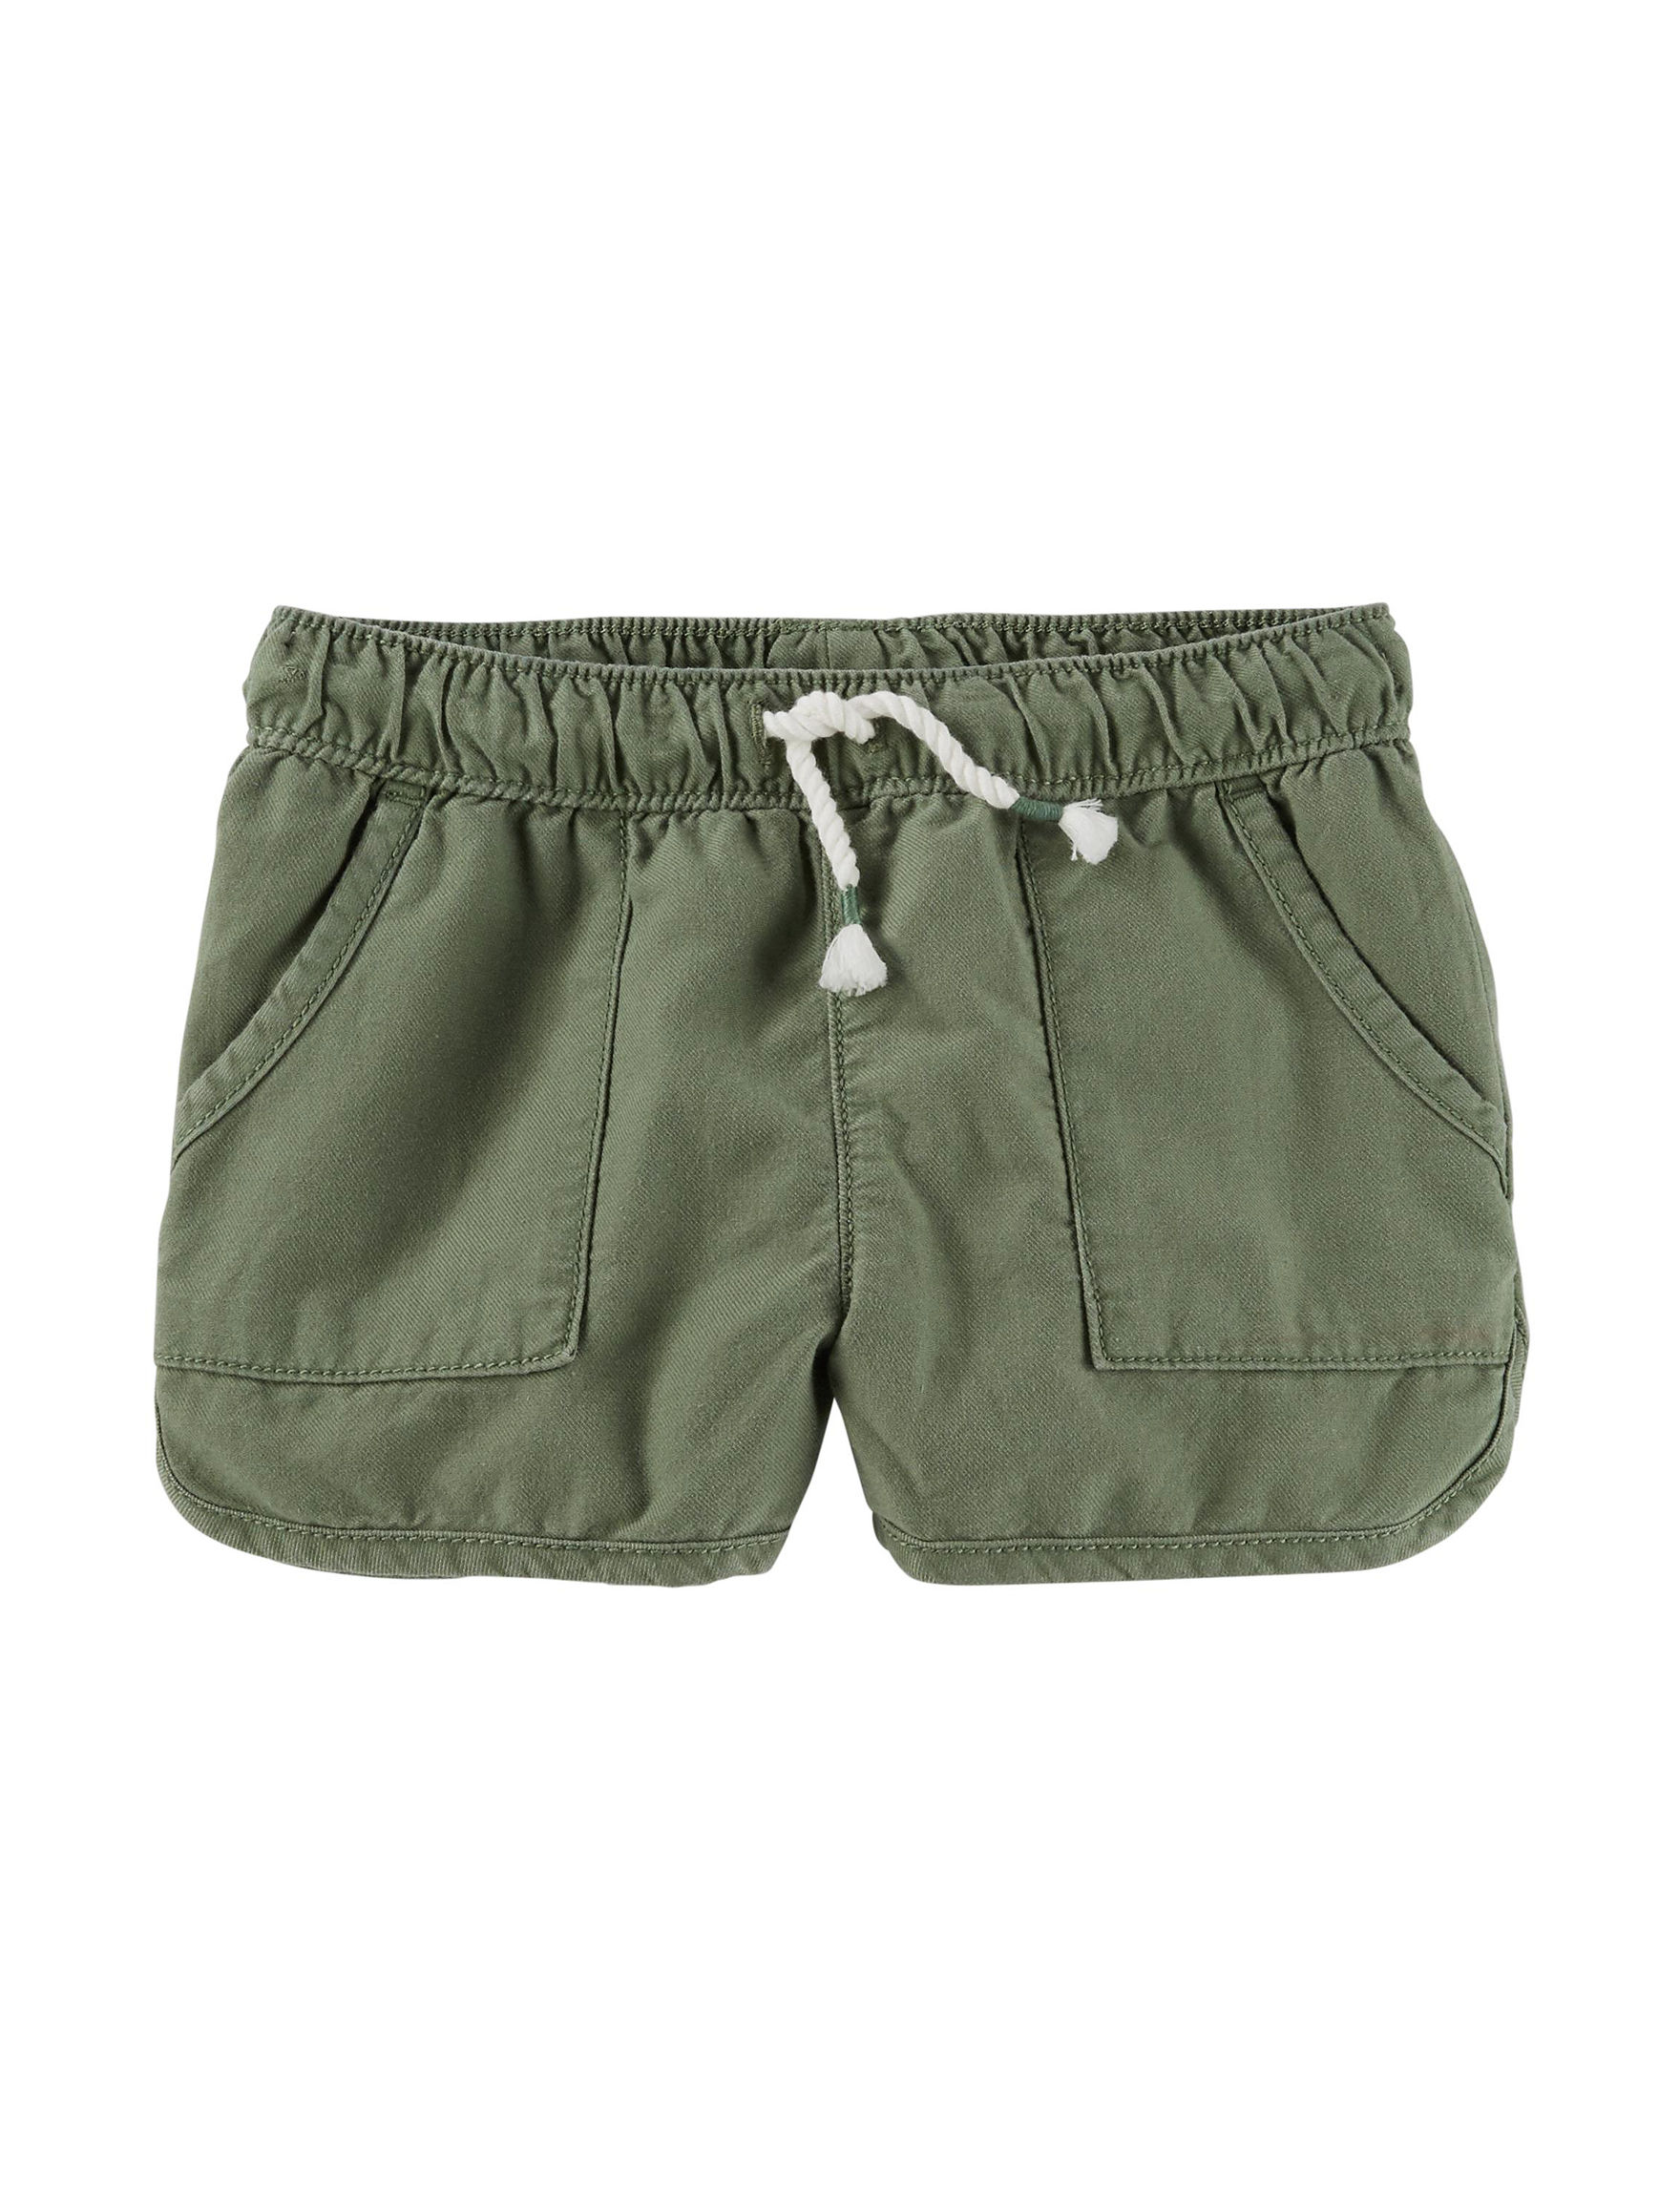 Oshkosh B'Gosh Green